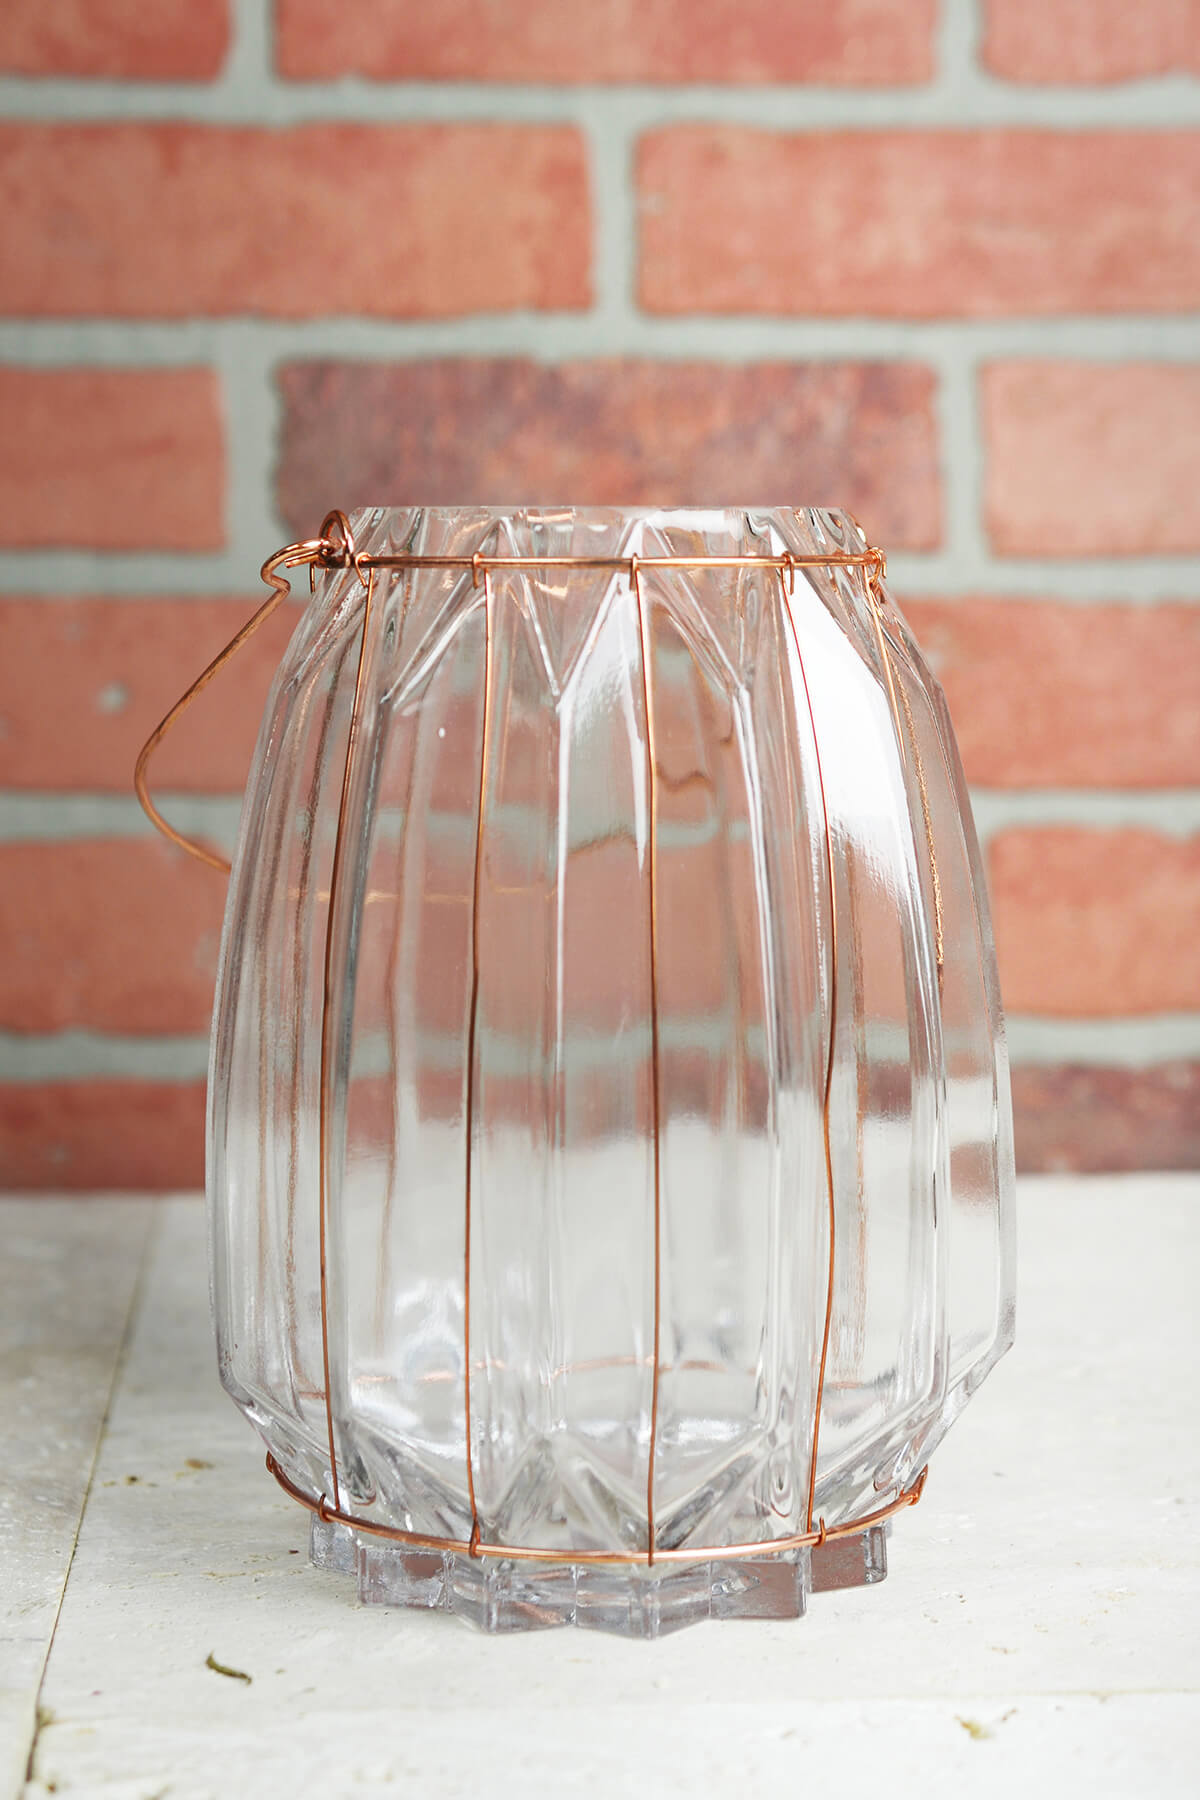 Chico Glass Amp Copper 7 5in Wire Vase Amp Candle Holder